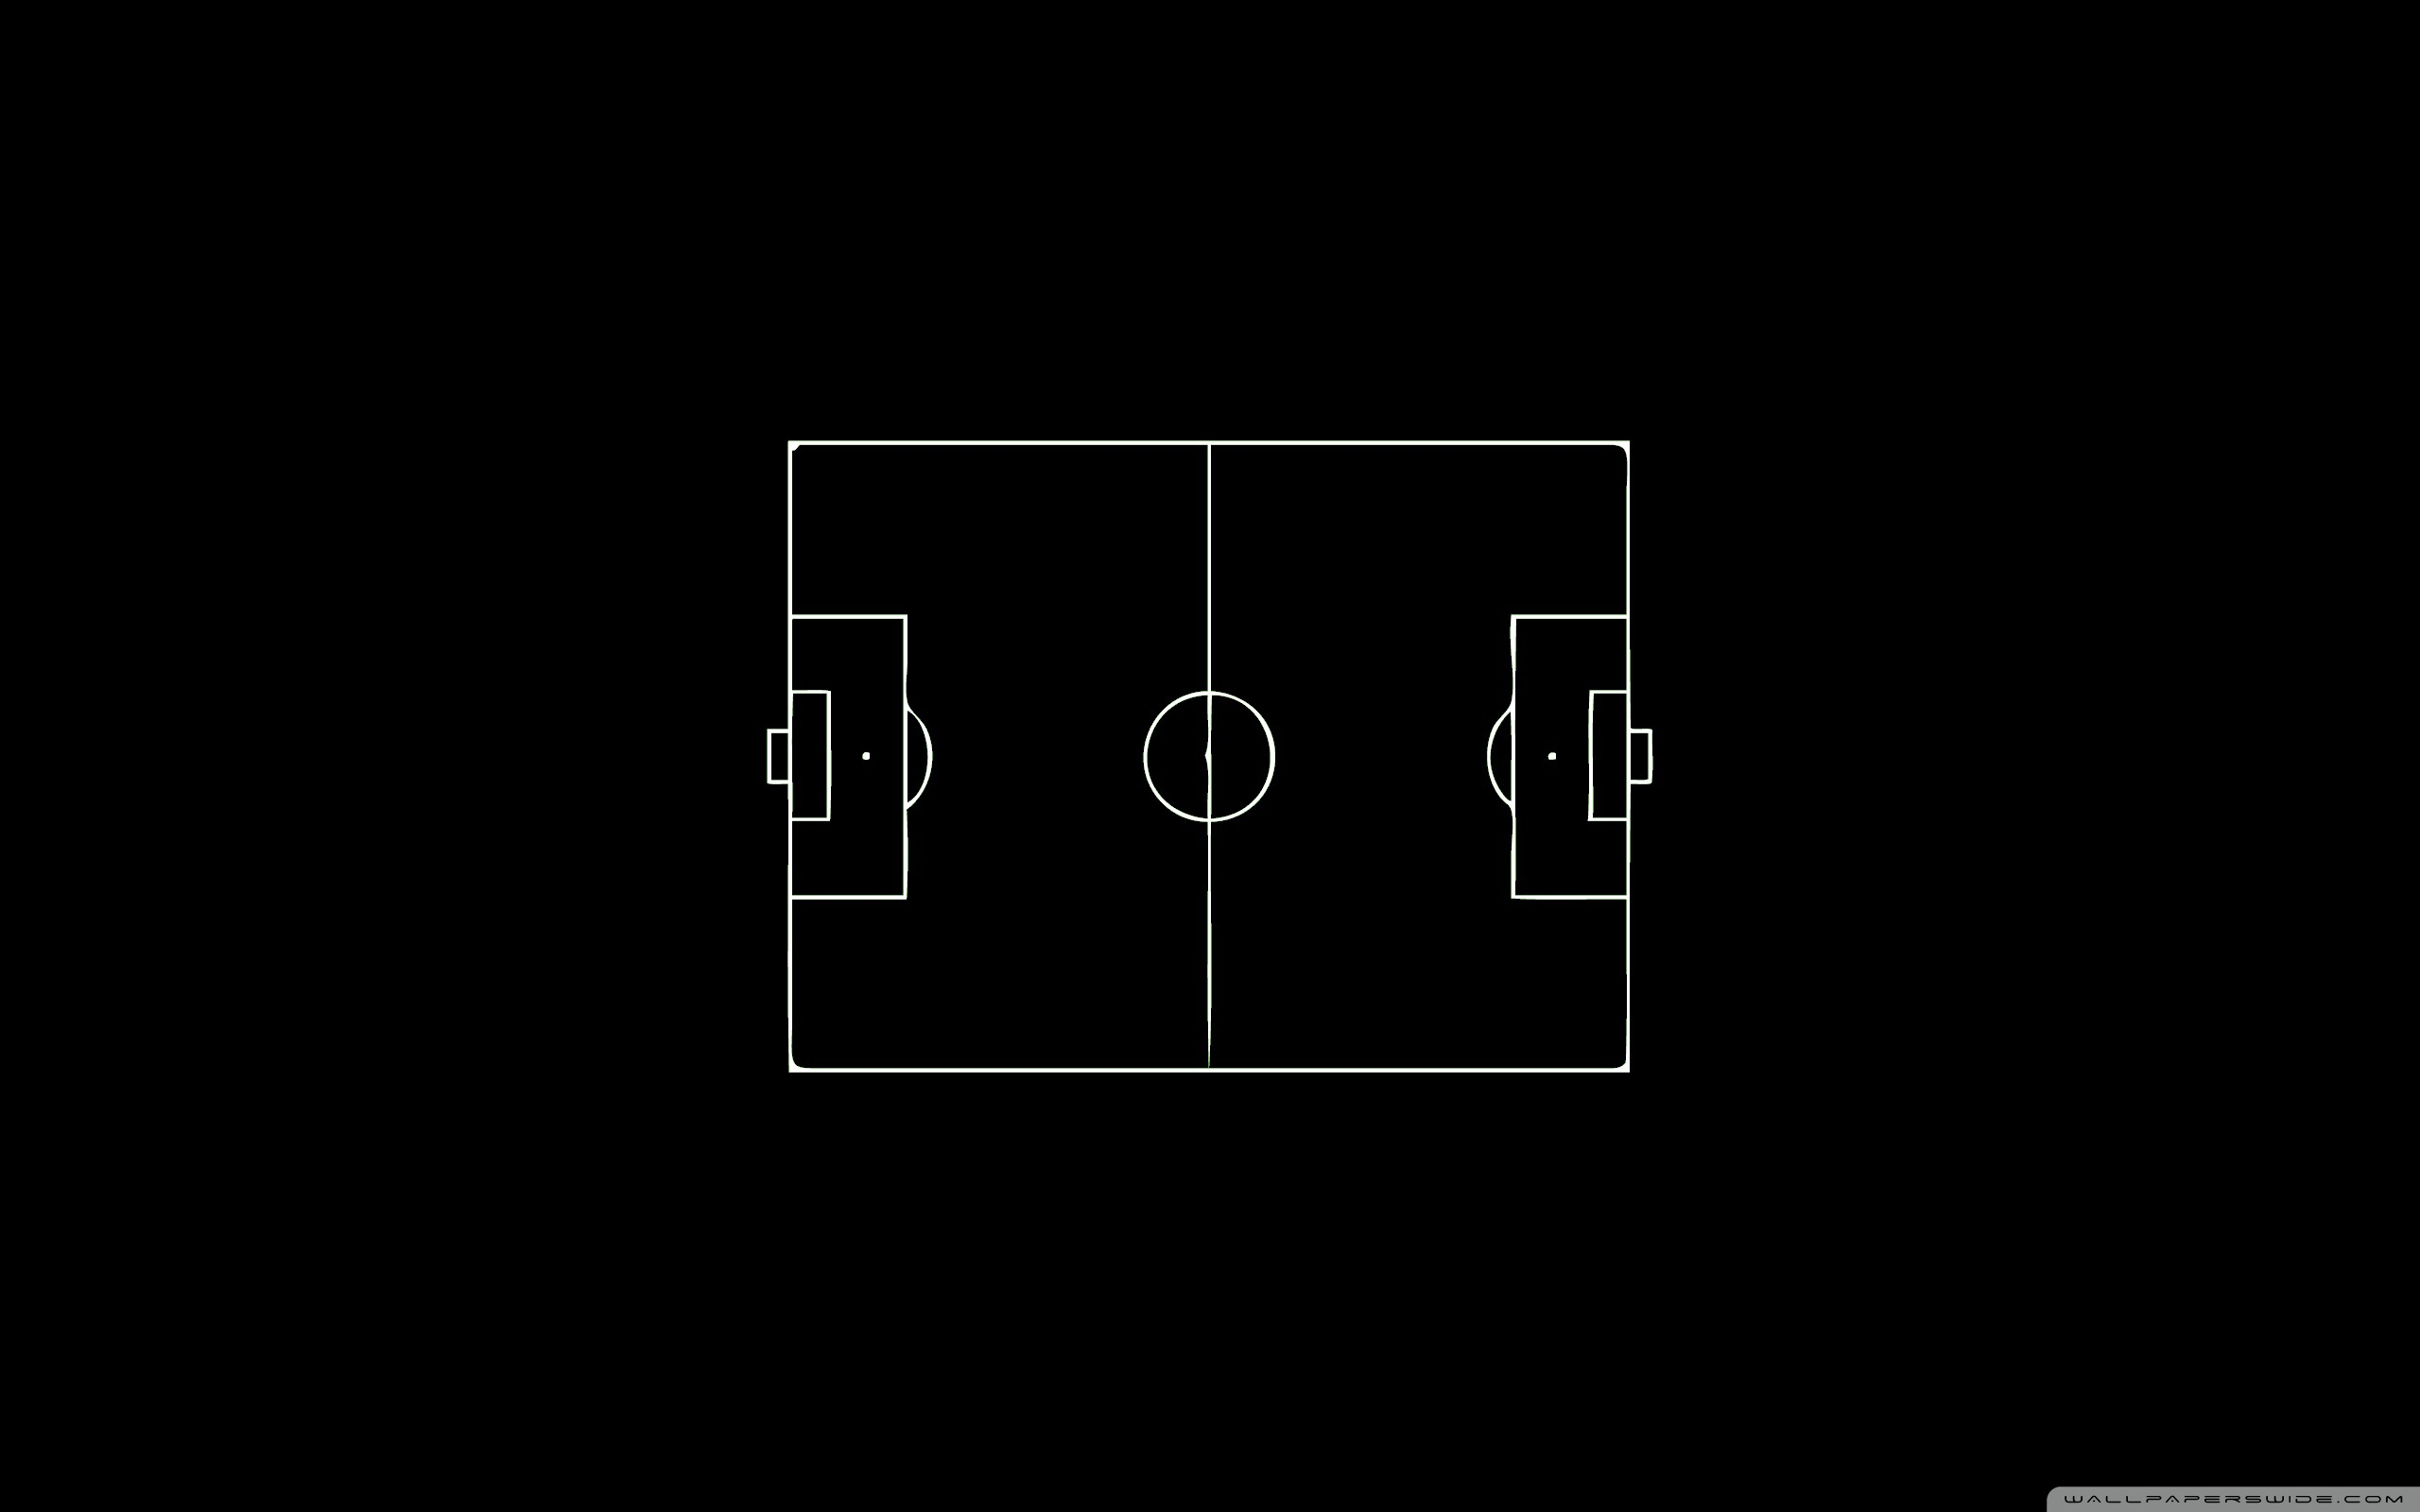 soccer field, layout, black and white